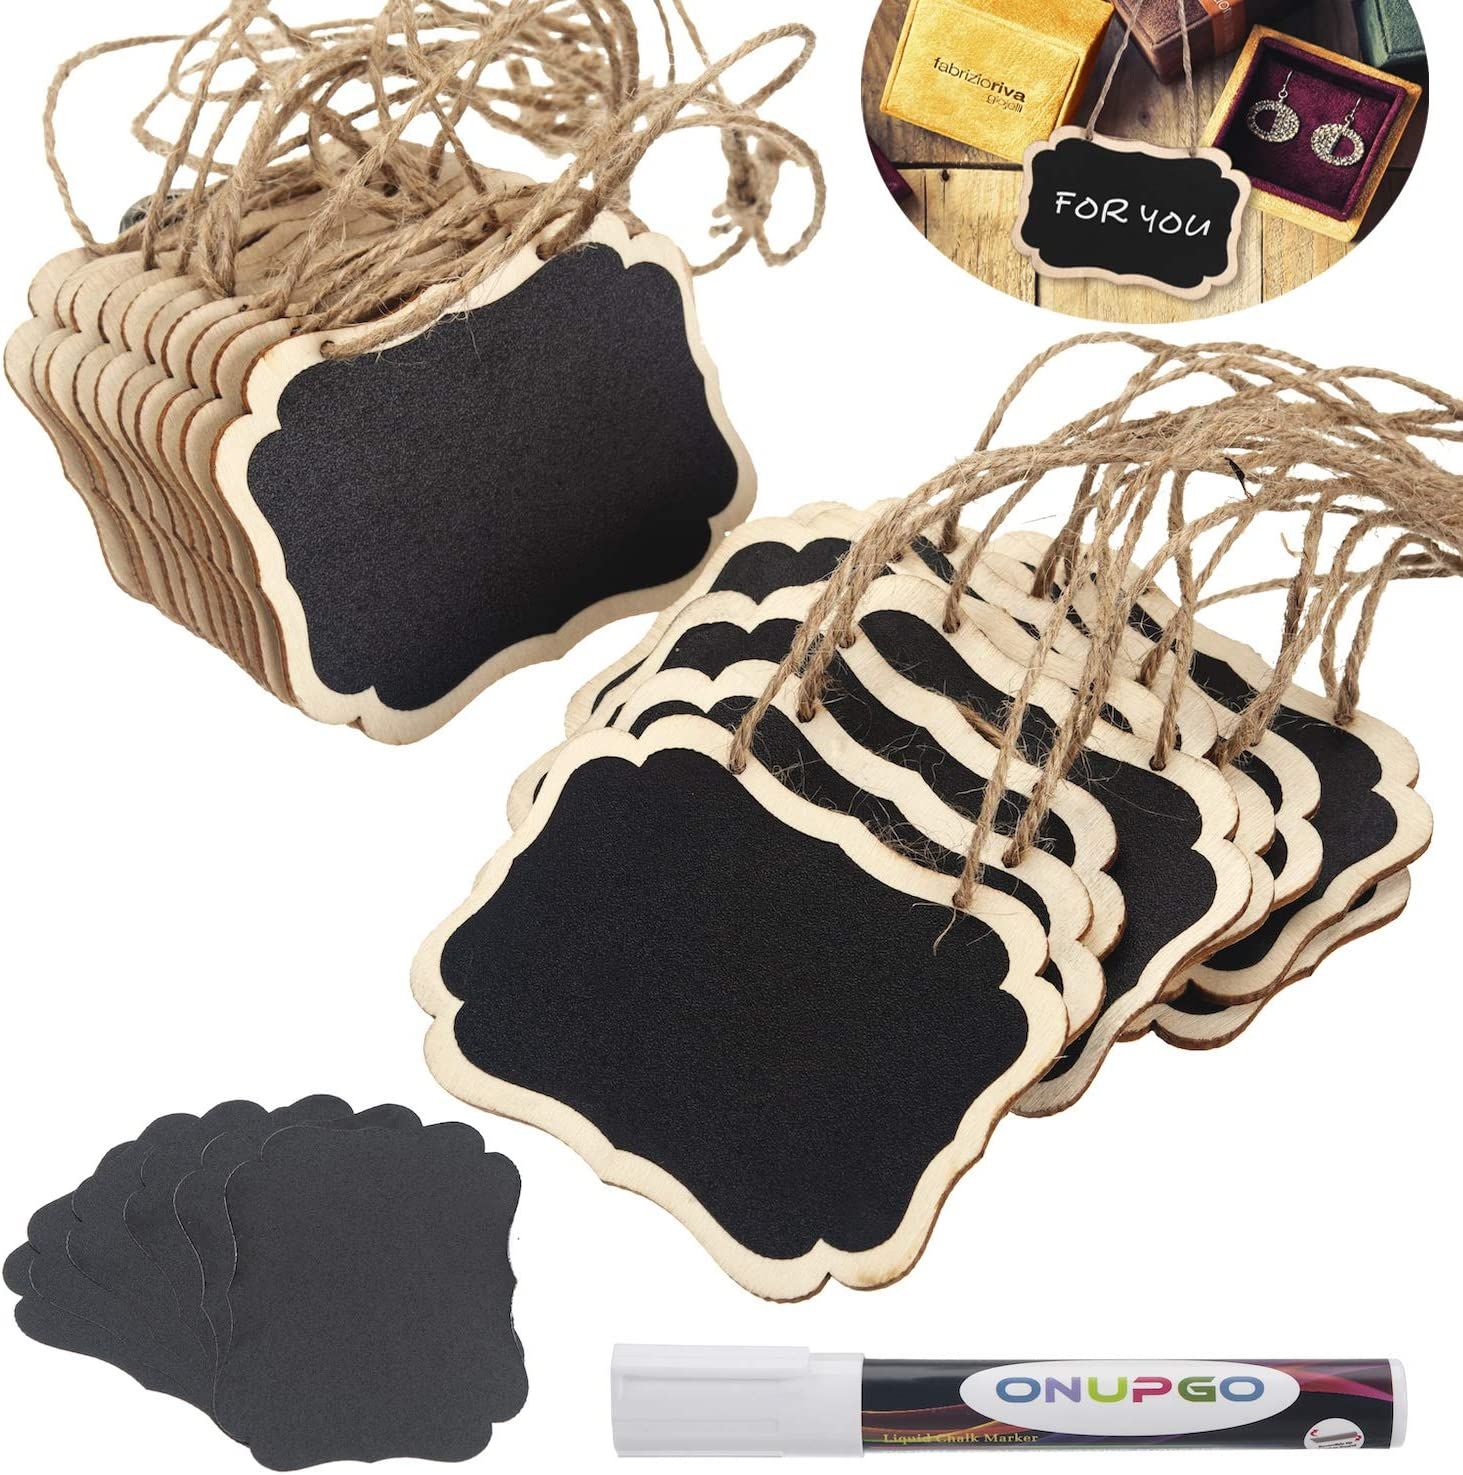 ONUPGO 20 Pack Chalkboard Tags with Liquid Chalk Marker, Double Sided Blackboard with Hanging String, Wooden Mini Erasable Chalkboard Signs, Hanging Chalkboard Labels, Price Tags, Message Tags